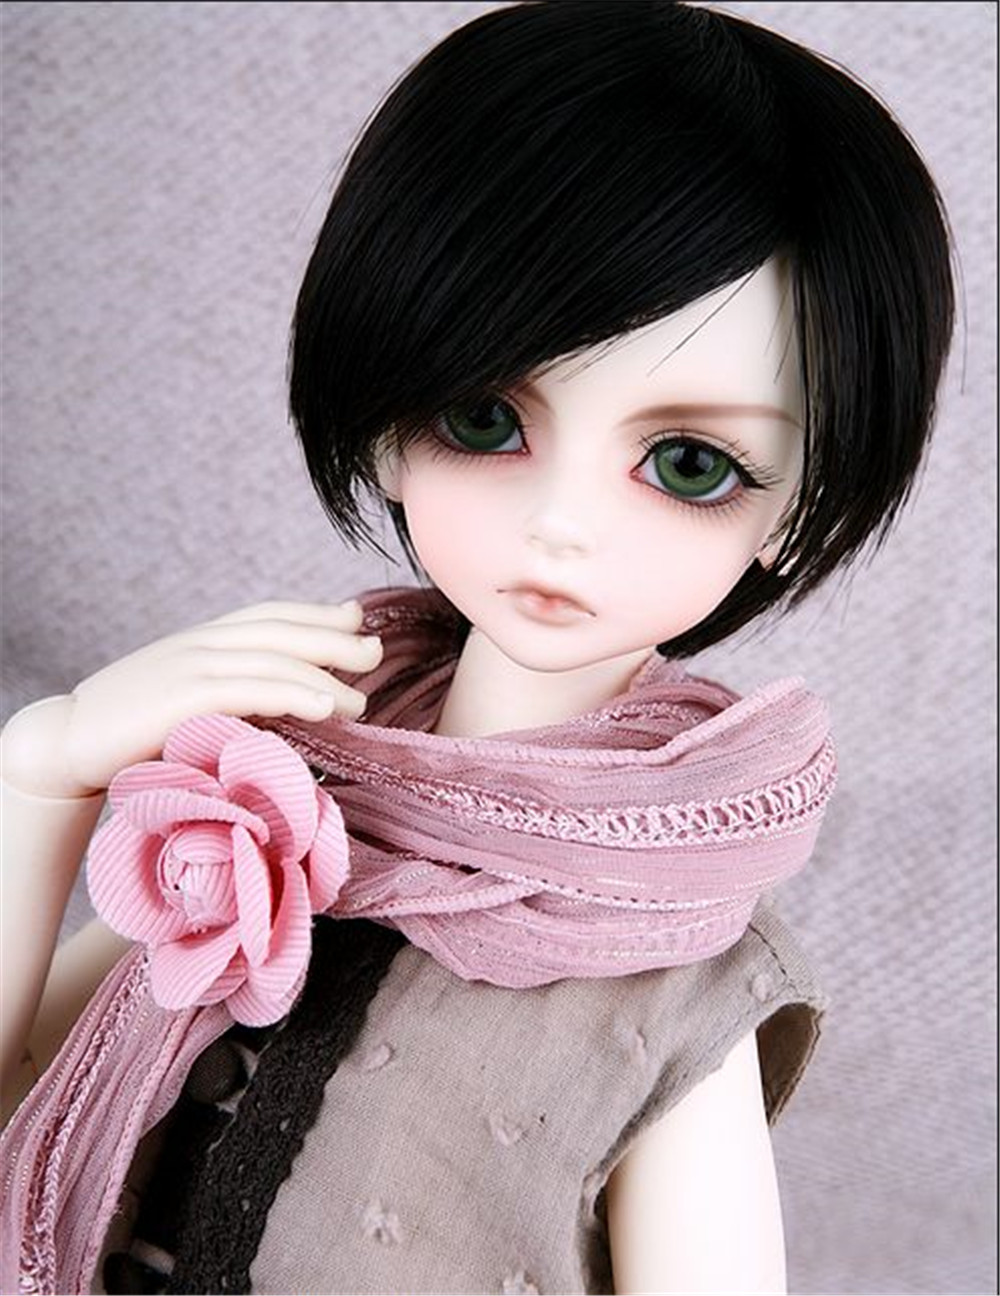 stenzhorn   1/4 BJD doll/dod/ai/luts/Kid Delf bory / 1/4 BJD doll boy version of eyes 1 4 bjd doll sd doll kid delf kiwi